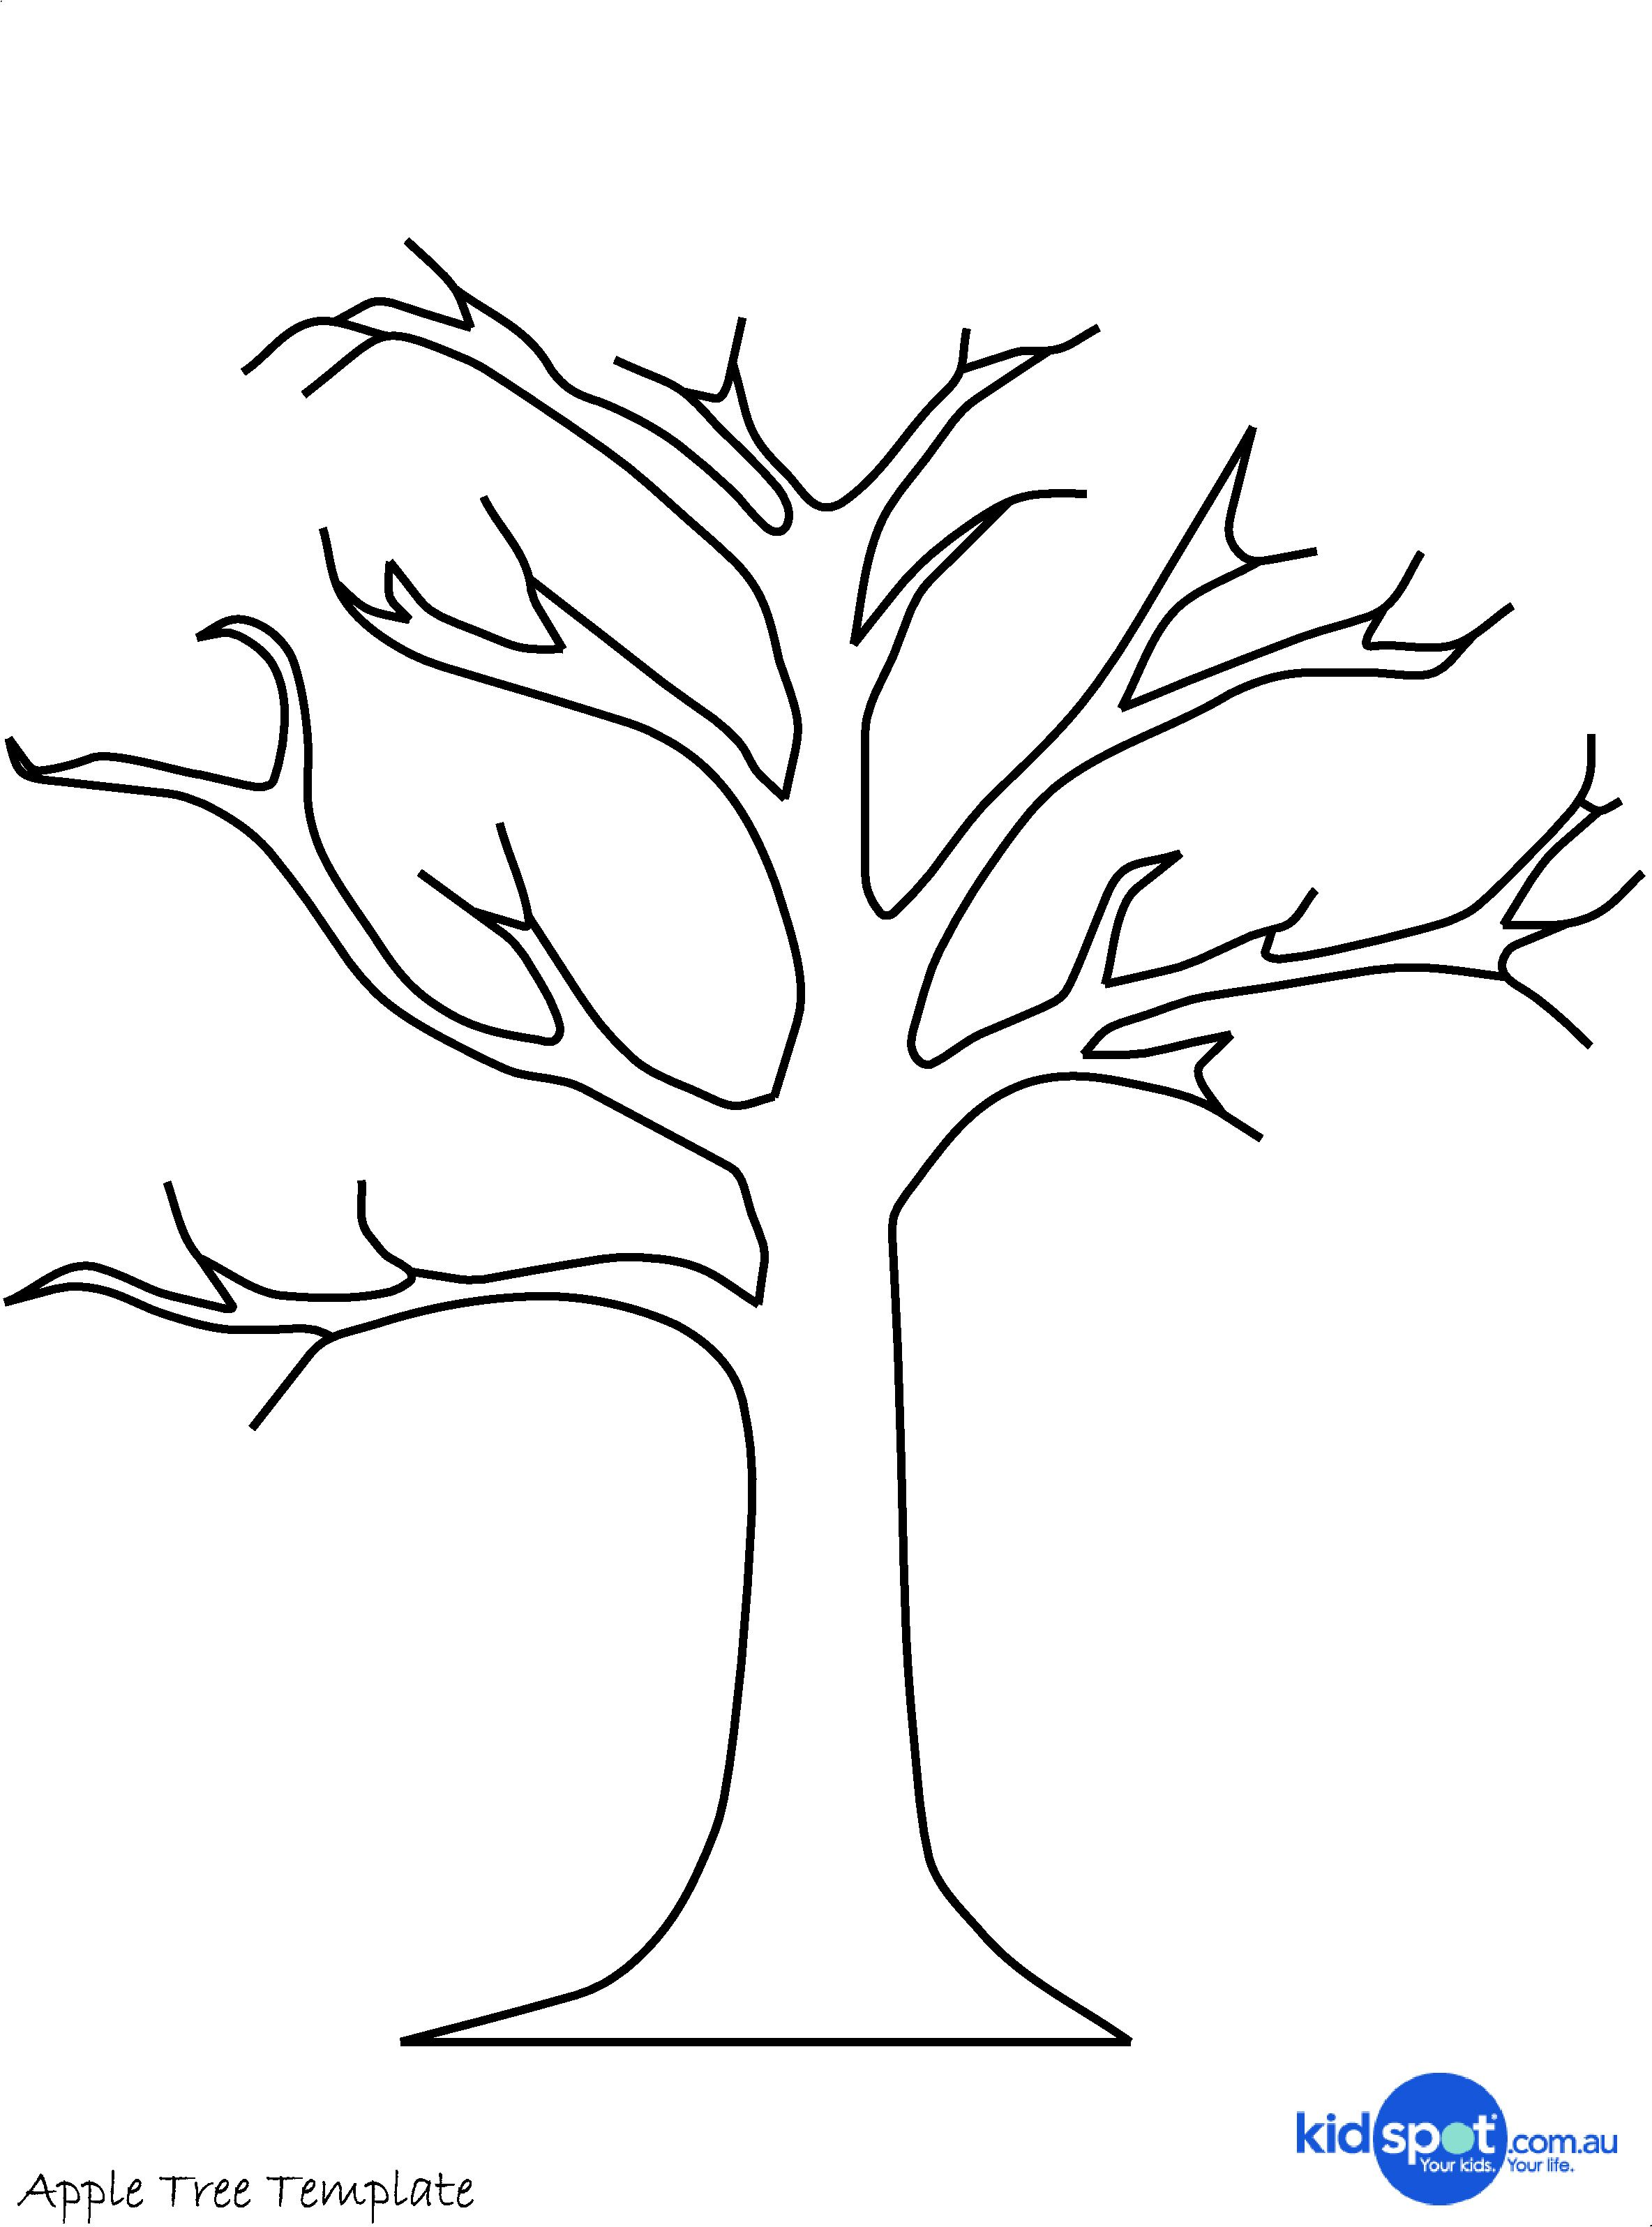 Tree craft: cork stamp apple tree | Clip Art | Pinterest | Tree